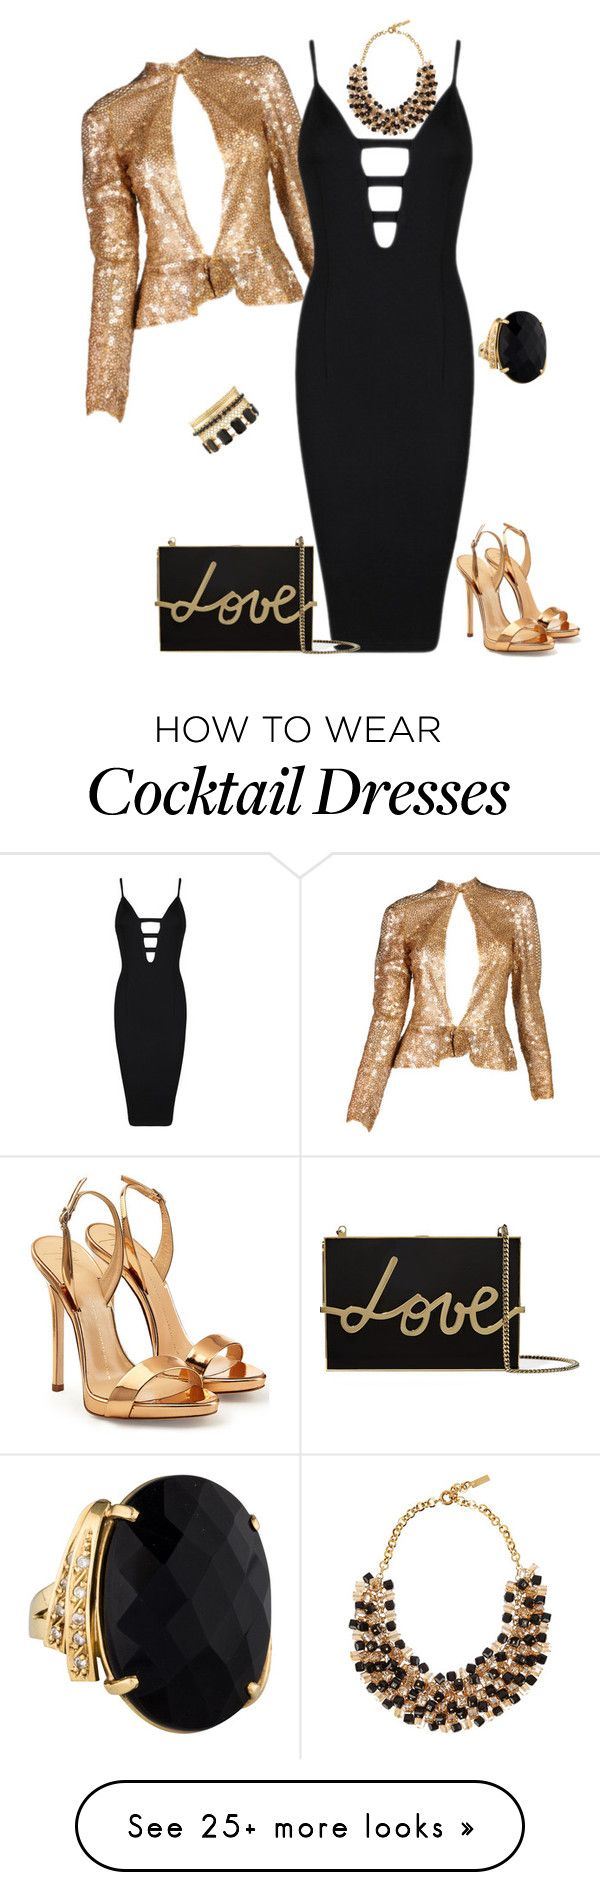 """outfit 3006"" by natalyag on Polyvore featuring Giuseppe Zanotti, Posh Girl, Etro, Lanvin and Charlotte Russe"